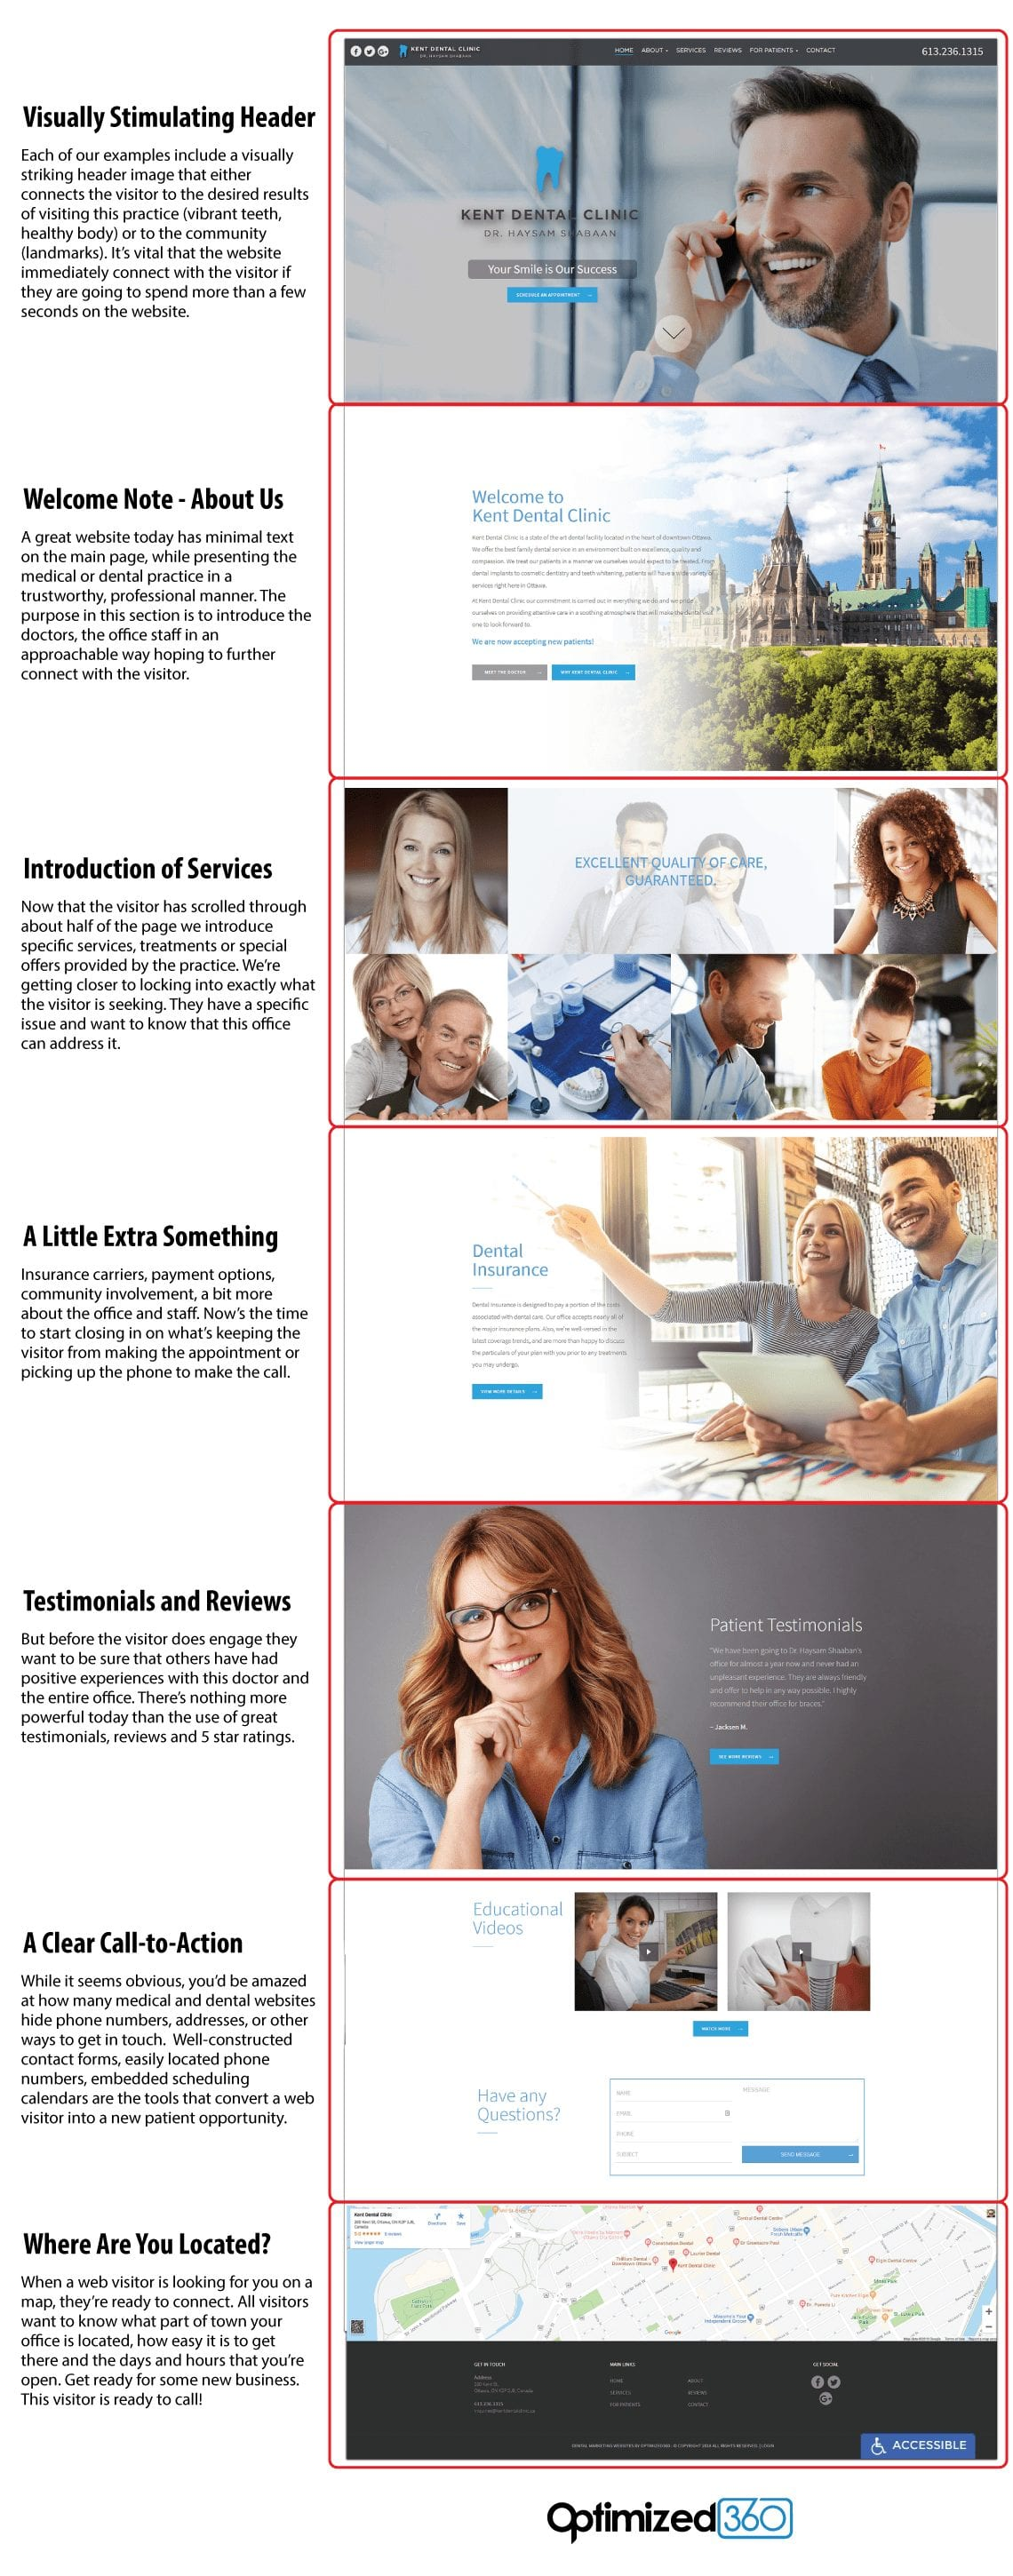 key elements of any great medical or dental website